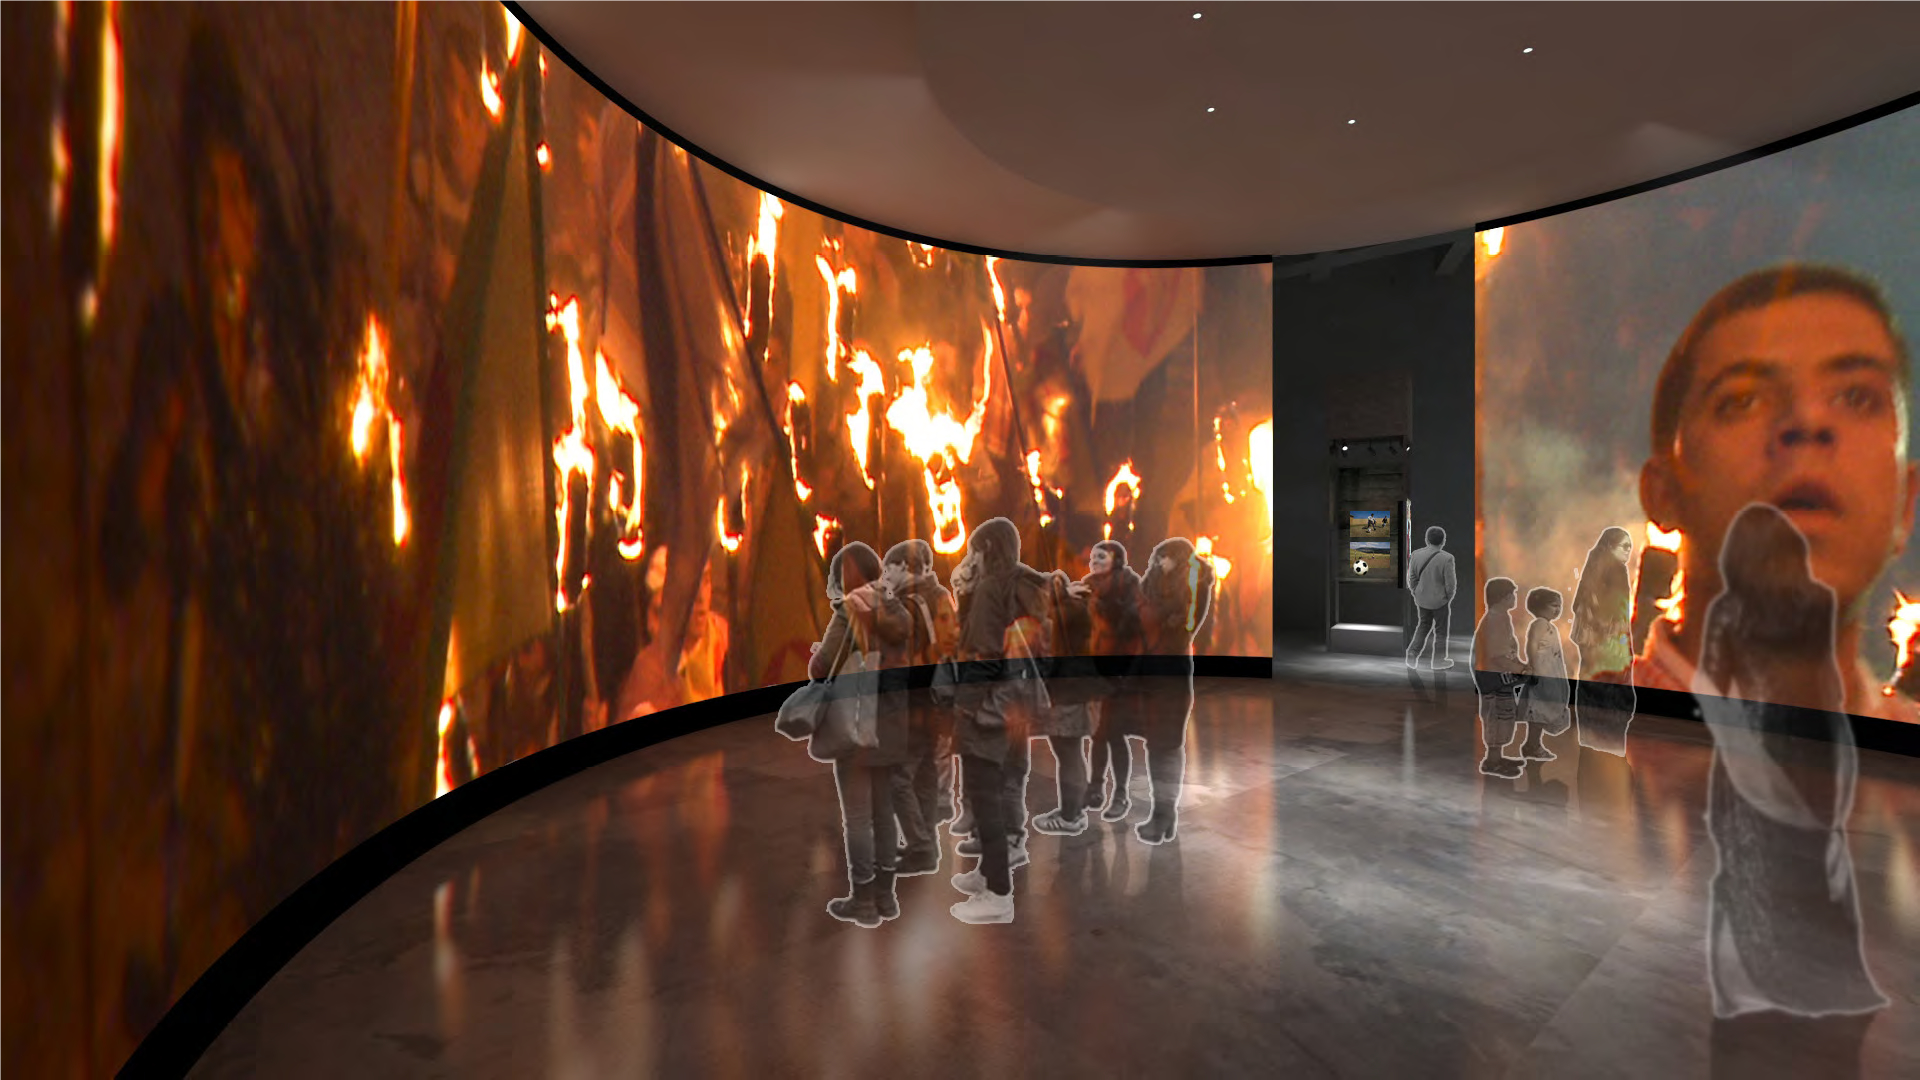 A rendering shows hypothetical visitors watching videos on screens that curve around a room. On the screens play videos showing street celebrations with lit torches.